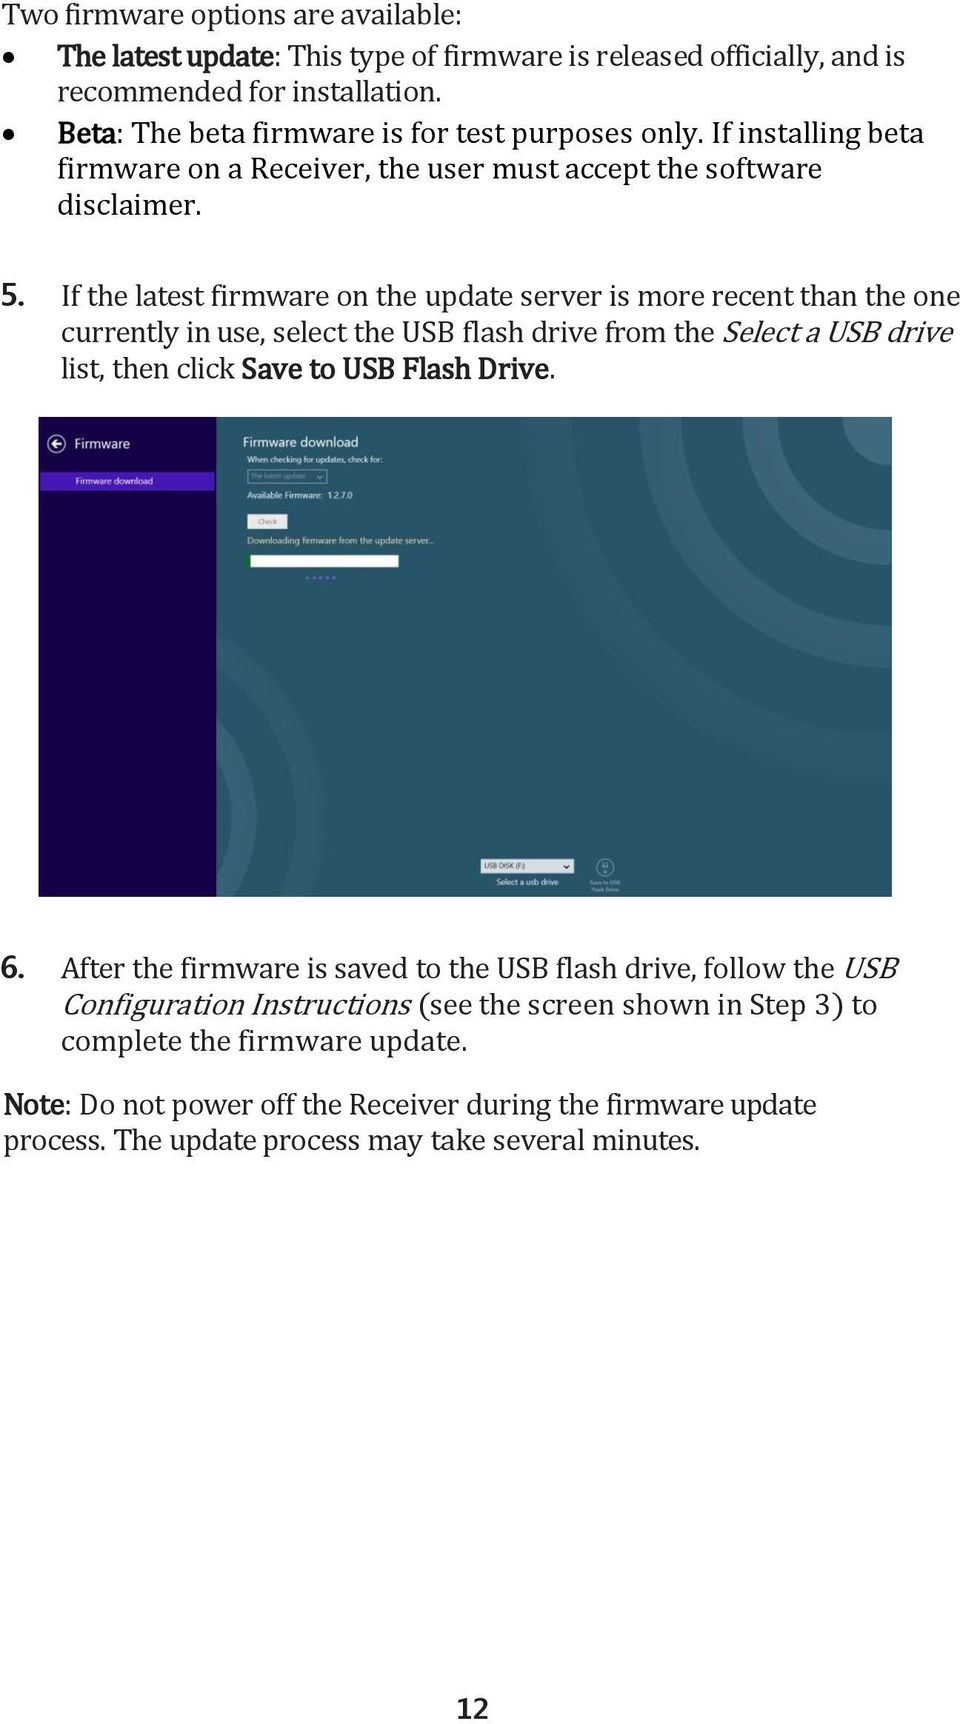 If the latest firmware on the update server is more recent than the one currently in use, select the USB flash drive from the Select a USB drive list, then click Save to USB Flash Drive.